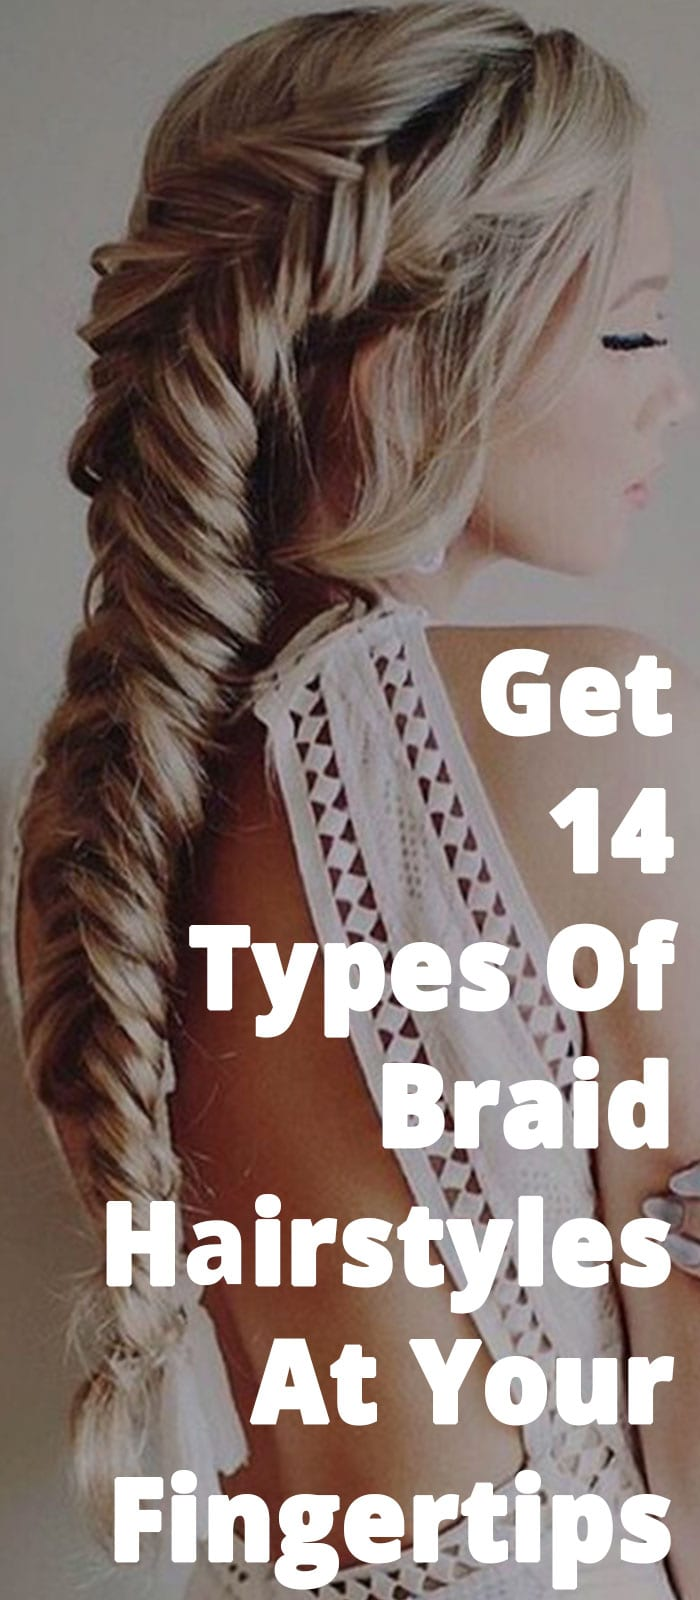 Get 14 Types Of Braid Hairstyles At Your Fingertips